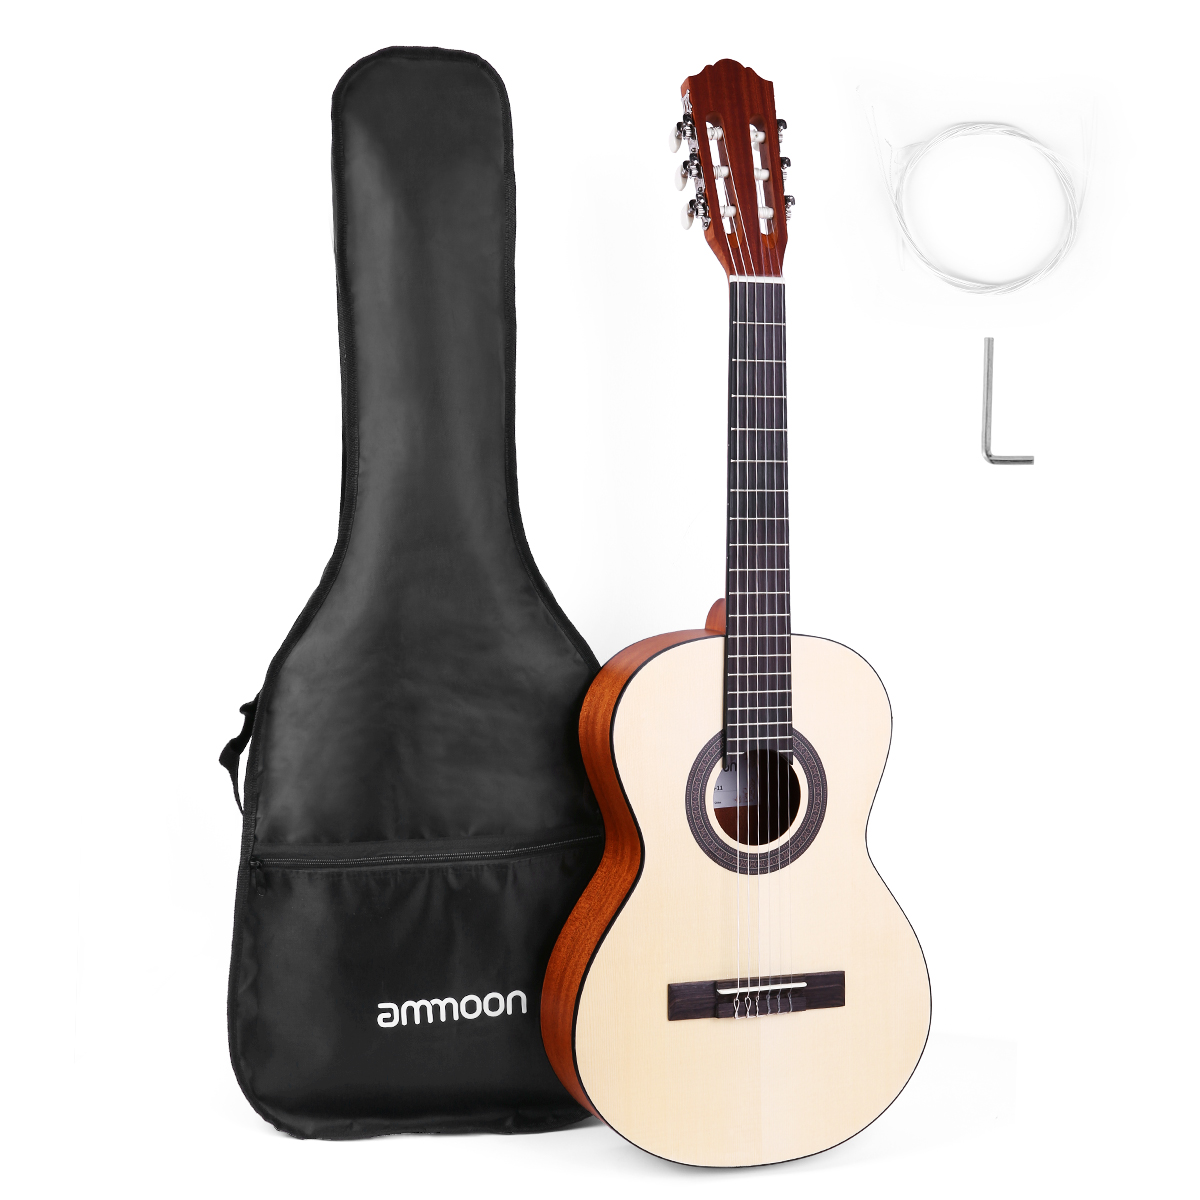 ammoon <font><b>36</b></font> Inch Acoustic Classical <font><b>Guitar</b></font> Travel Acoustic Classical <font><b>Guitar</b></font> Junior Size 6-String Spruce with Gig Bag Strings New image